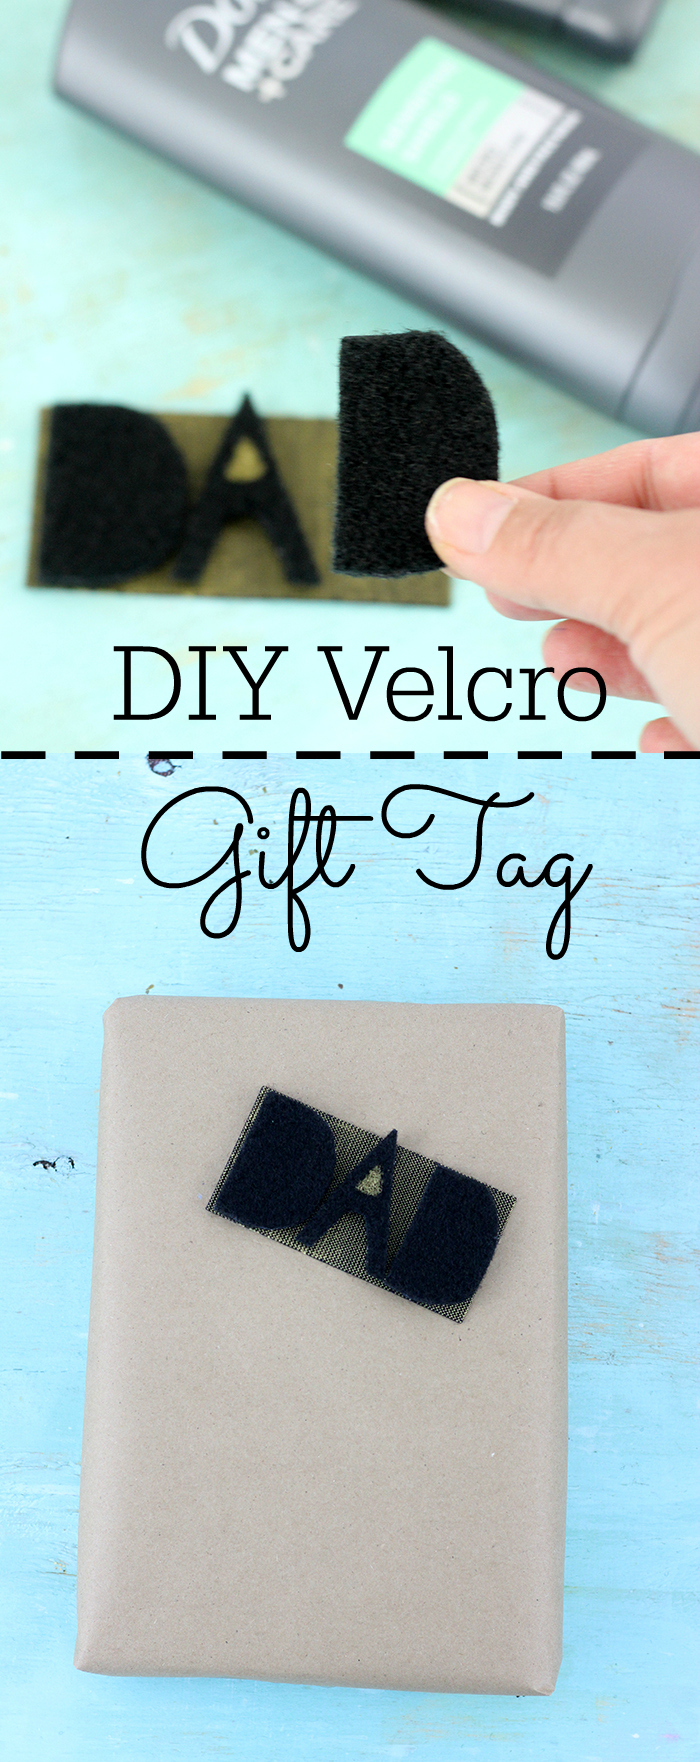 """Care it forward for Father's Day with this super cool DIY Velcro Gift Tag that reads """"DAD"""" + get more perfect give ideas for him."""